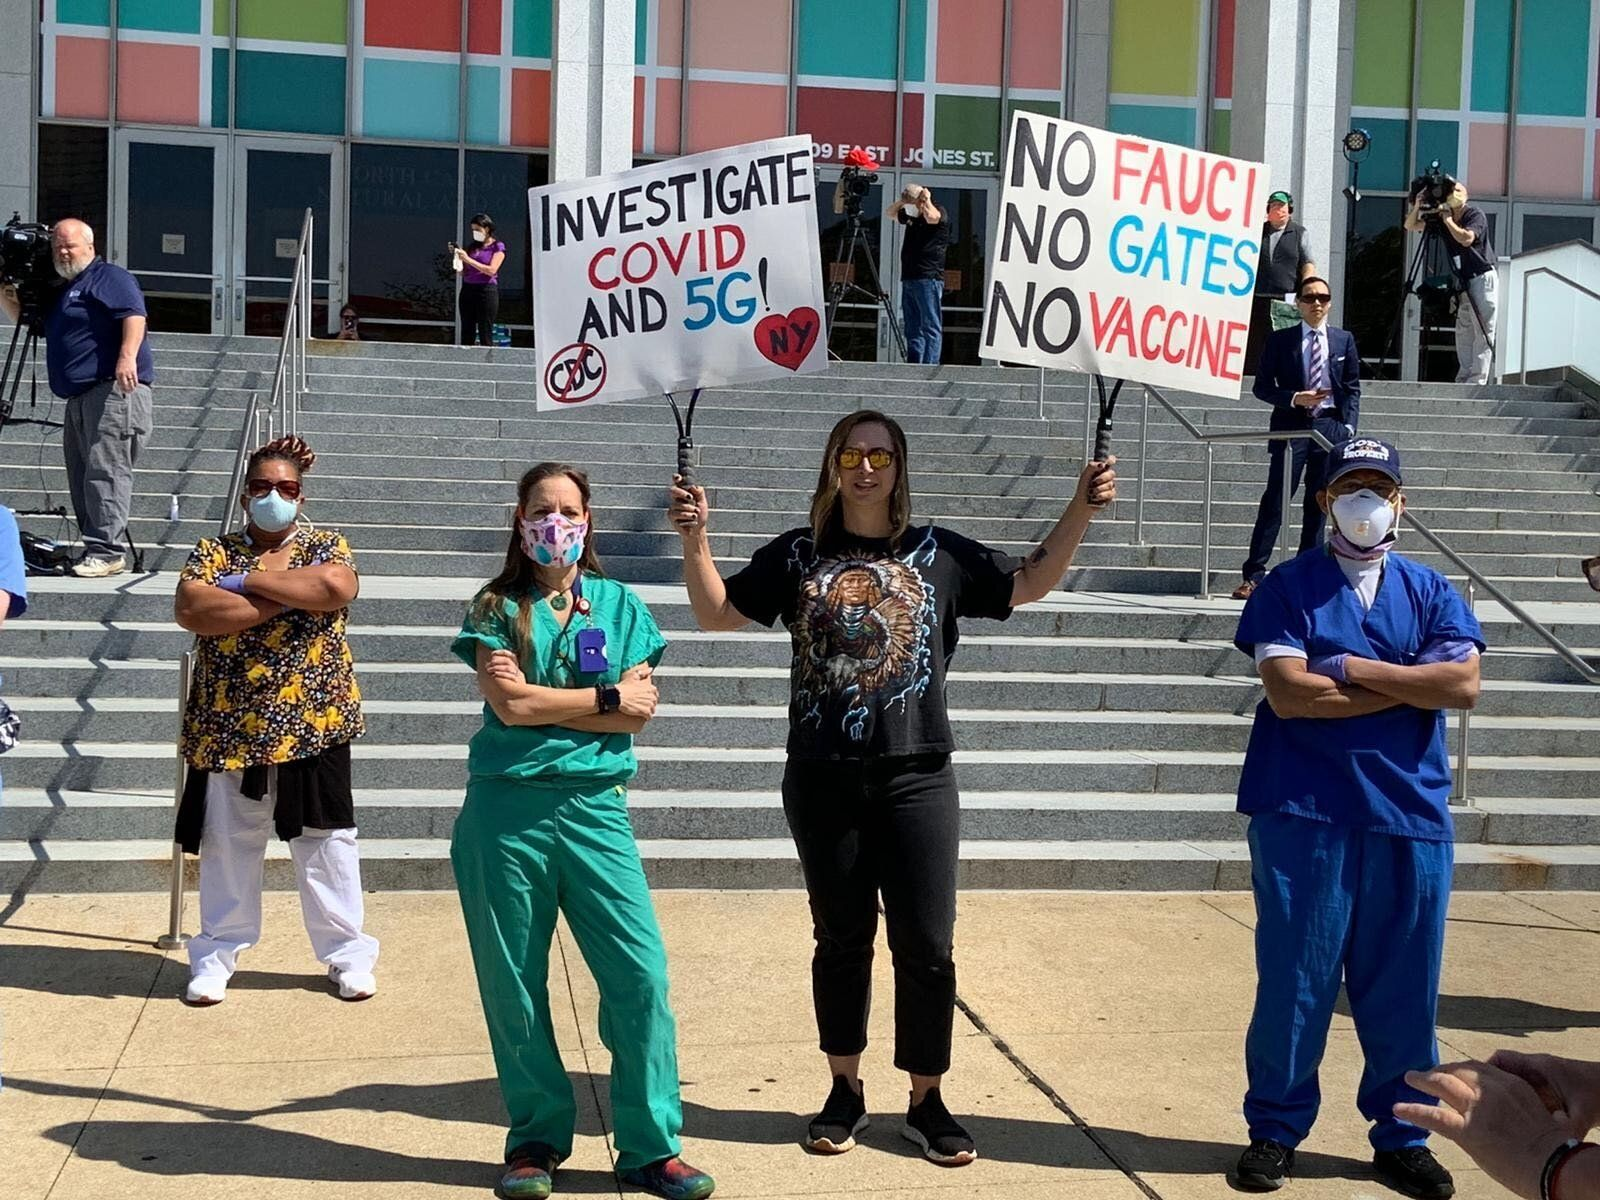 Many of the protesters at the ReOpen NC rally did not wear protective equipment such as masks.